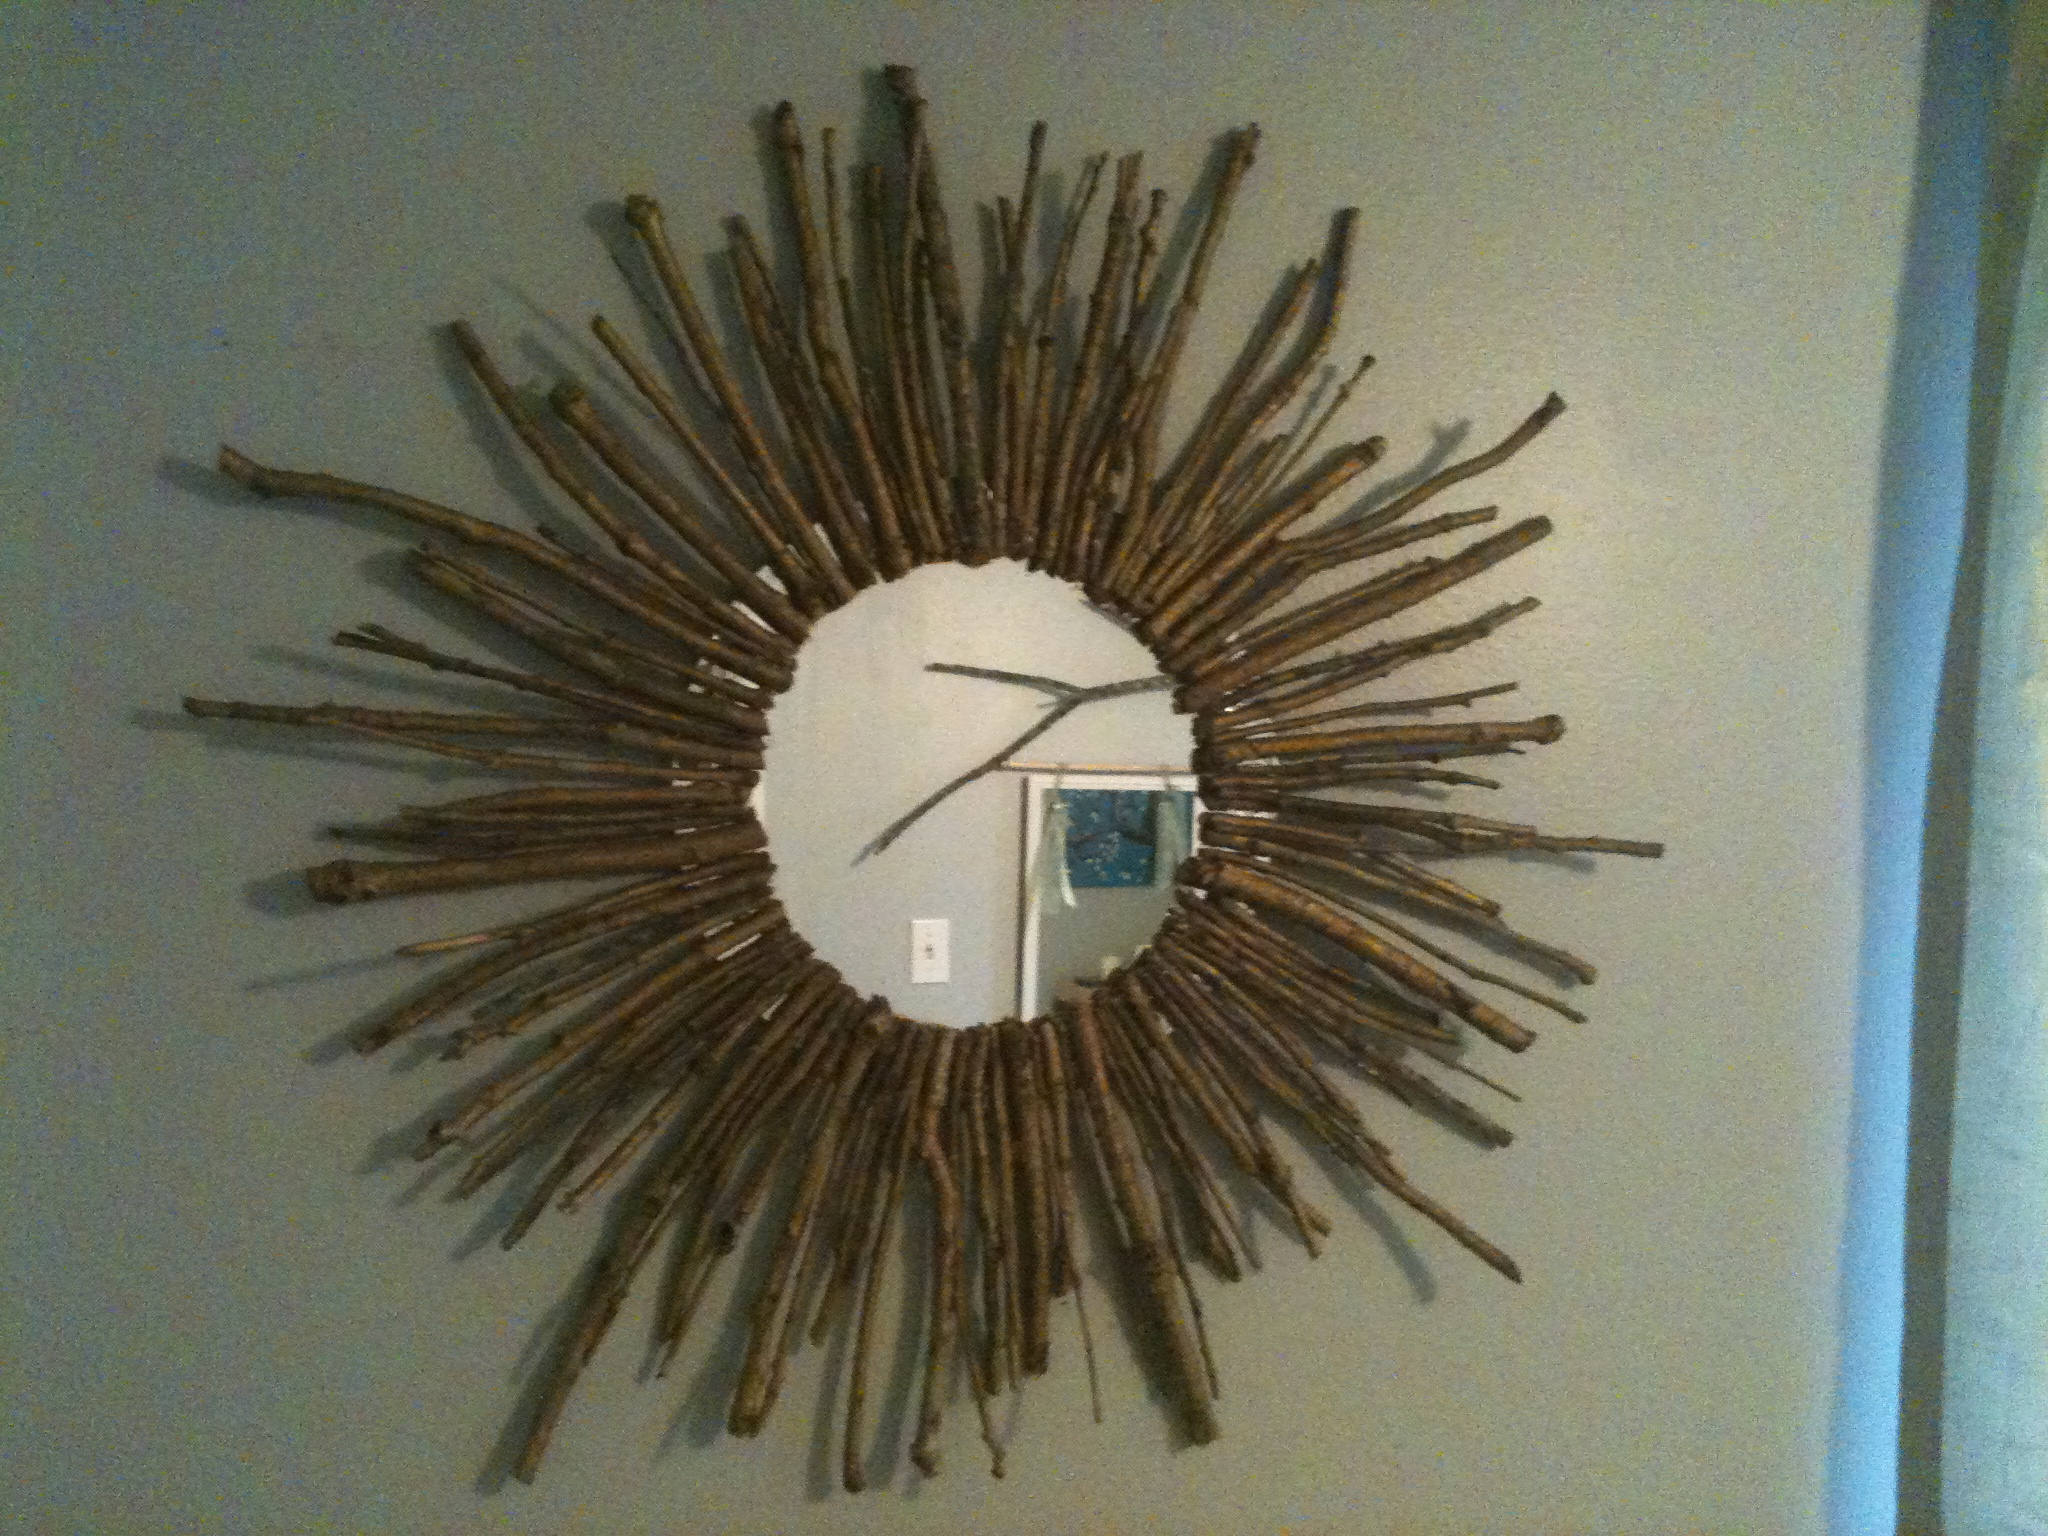 Endearing sunburst mirrors with rustic table and night lap combined plus luxury wall